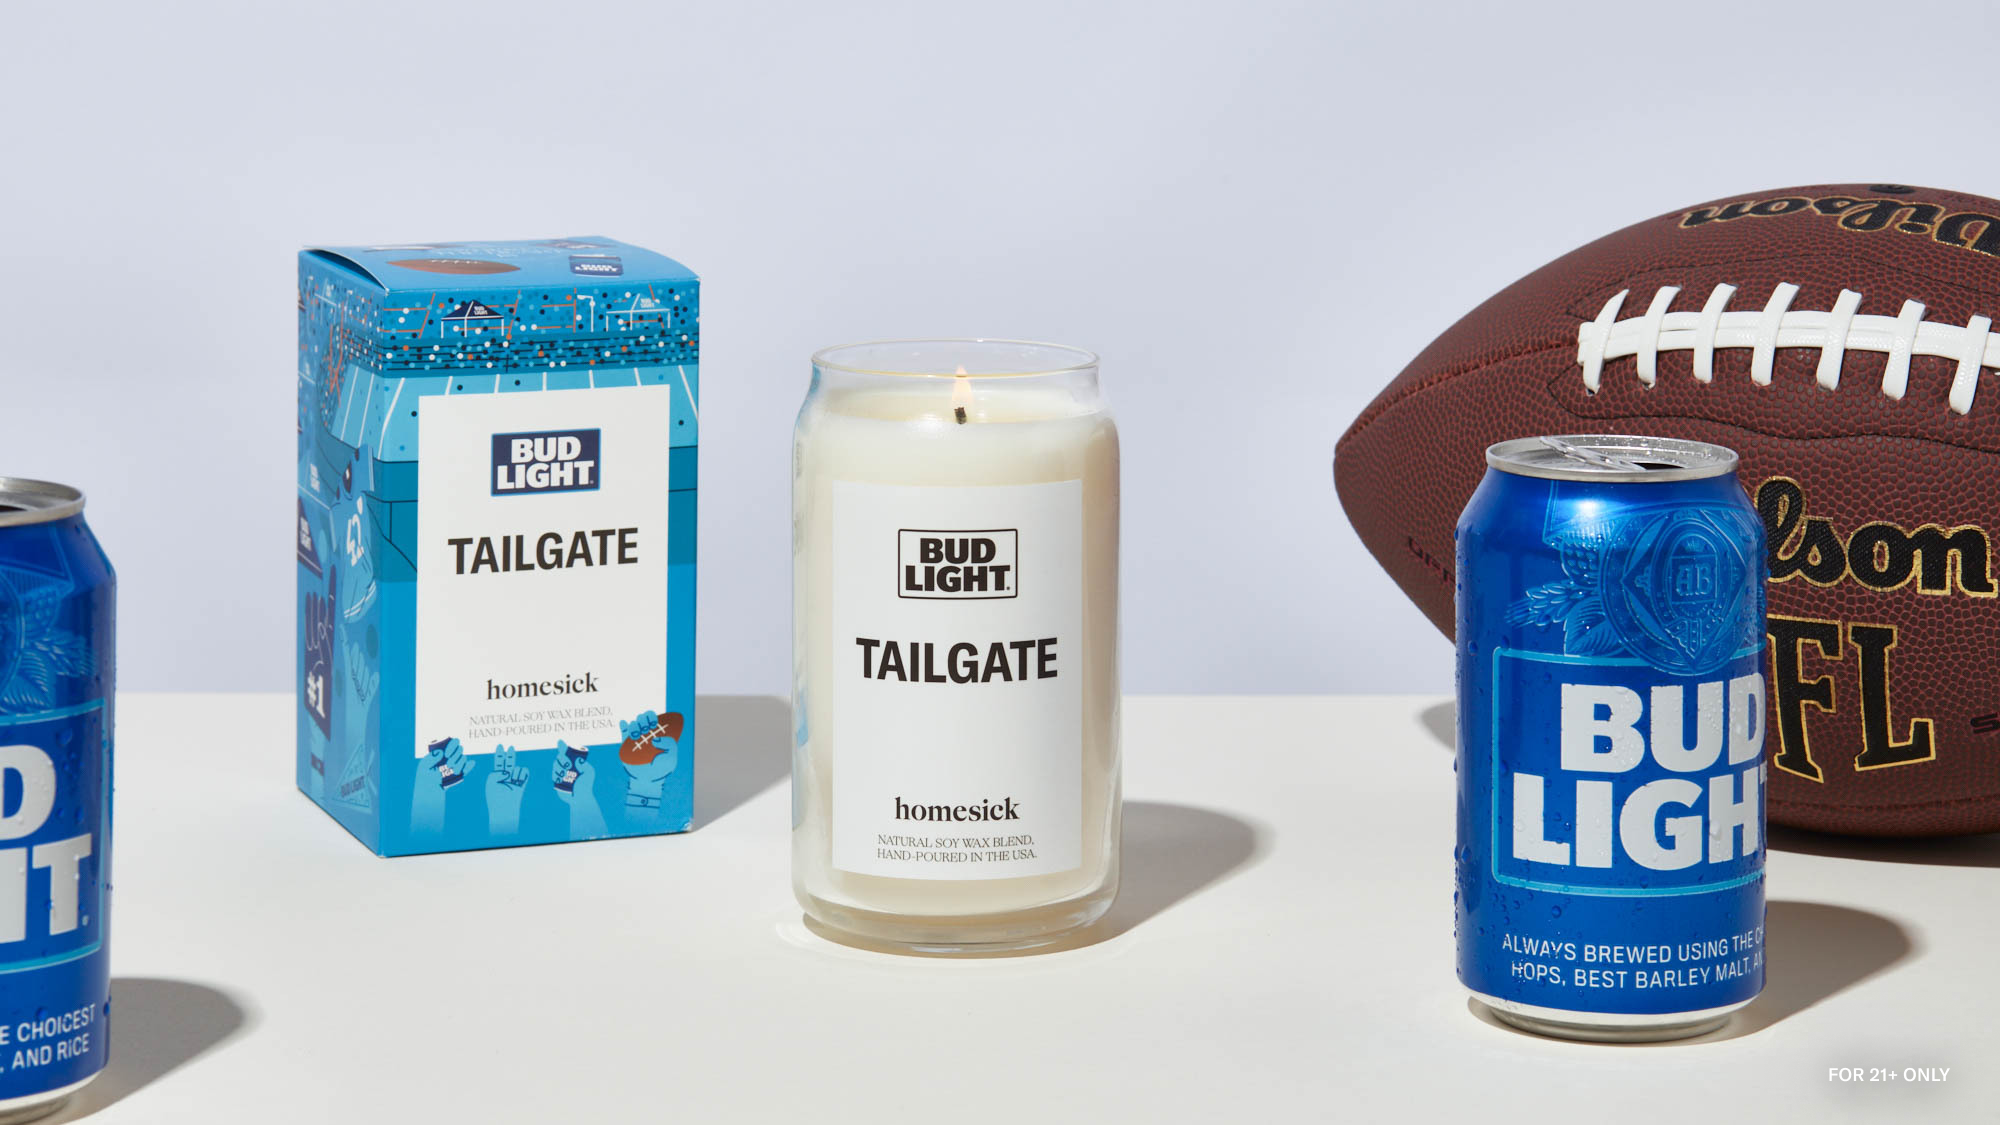 Homesick and Bud Light Partner to Create New 'Tailgate' Scented Candle